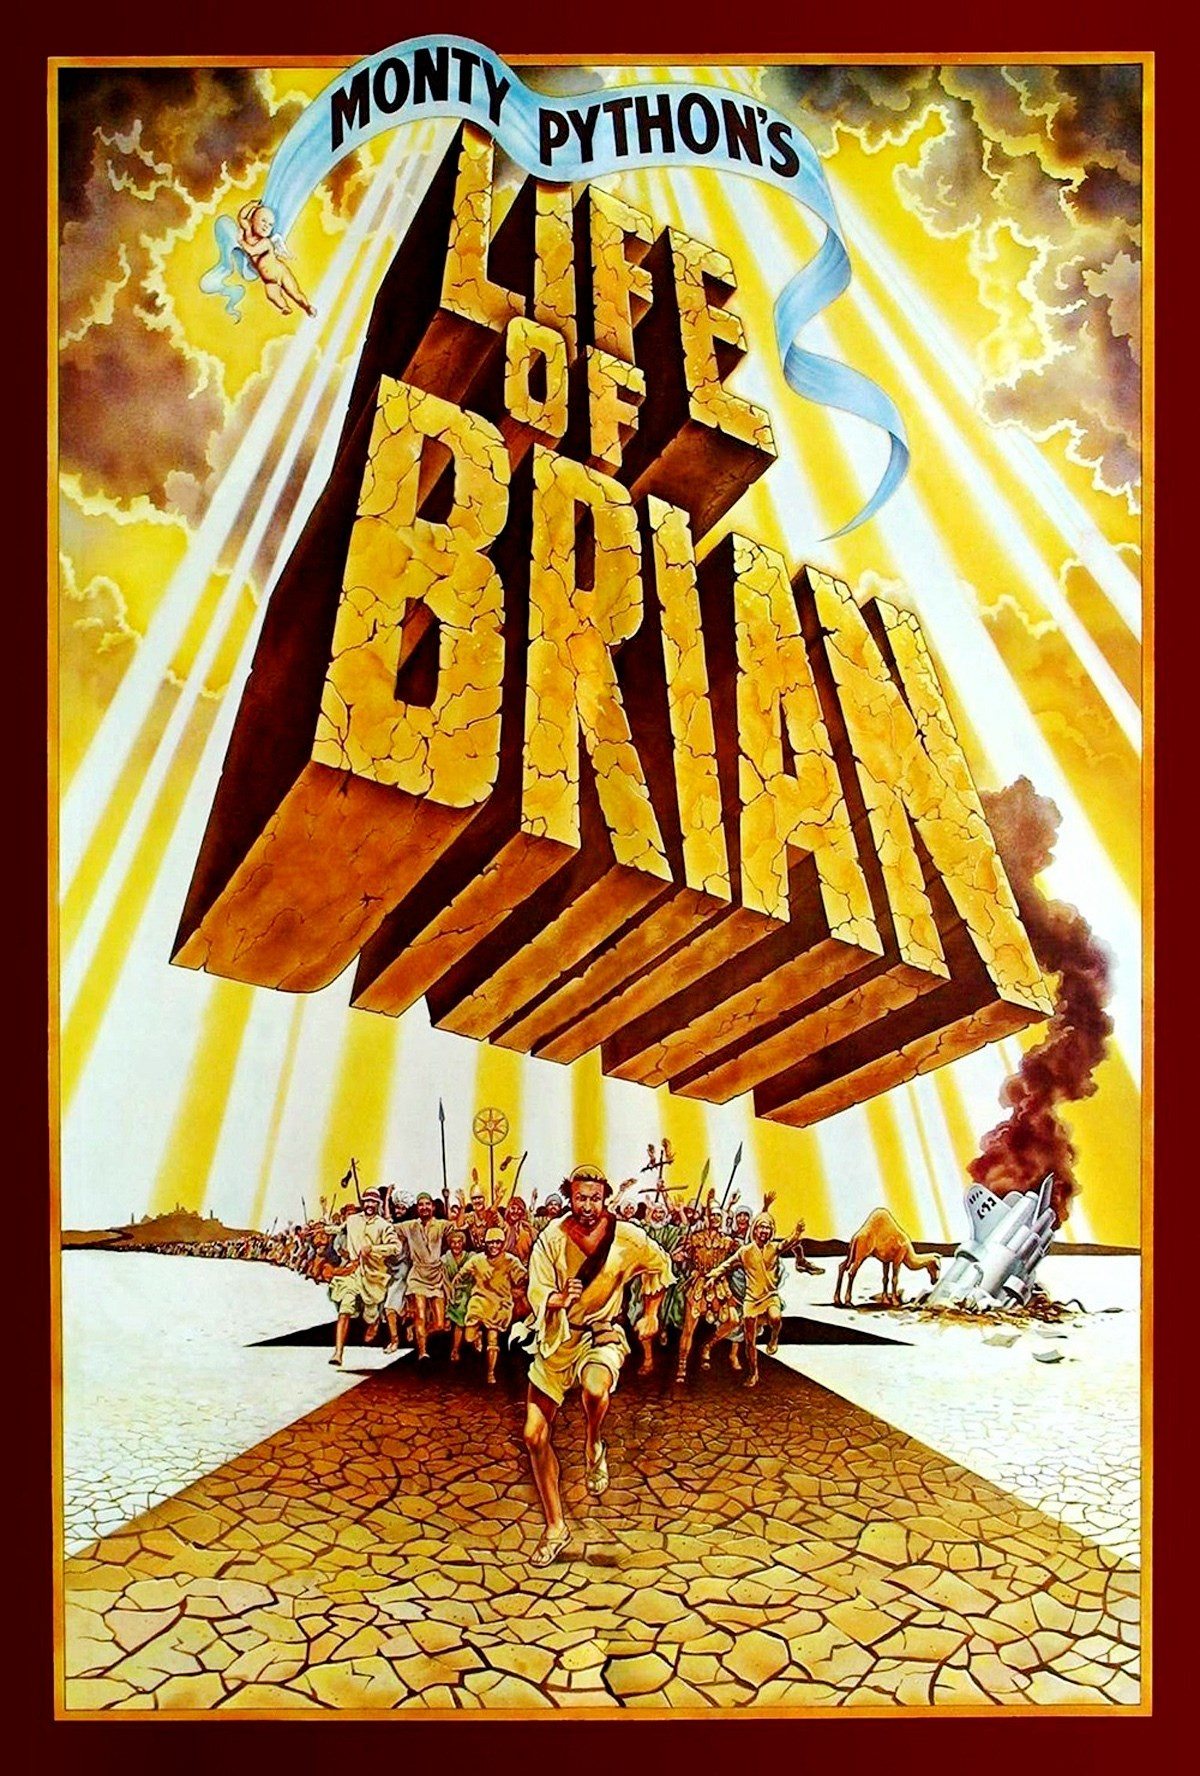 Brian élete – The Life of Brian